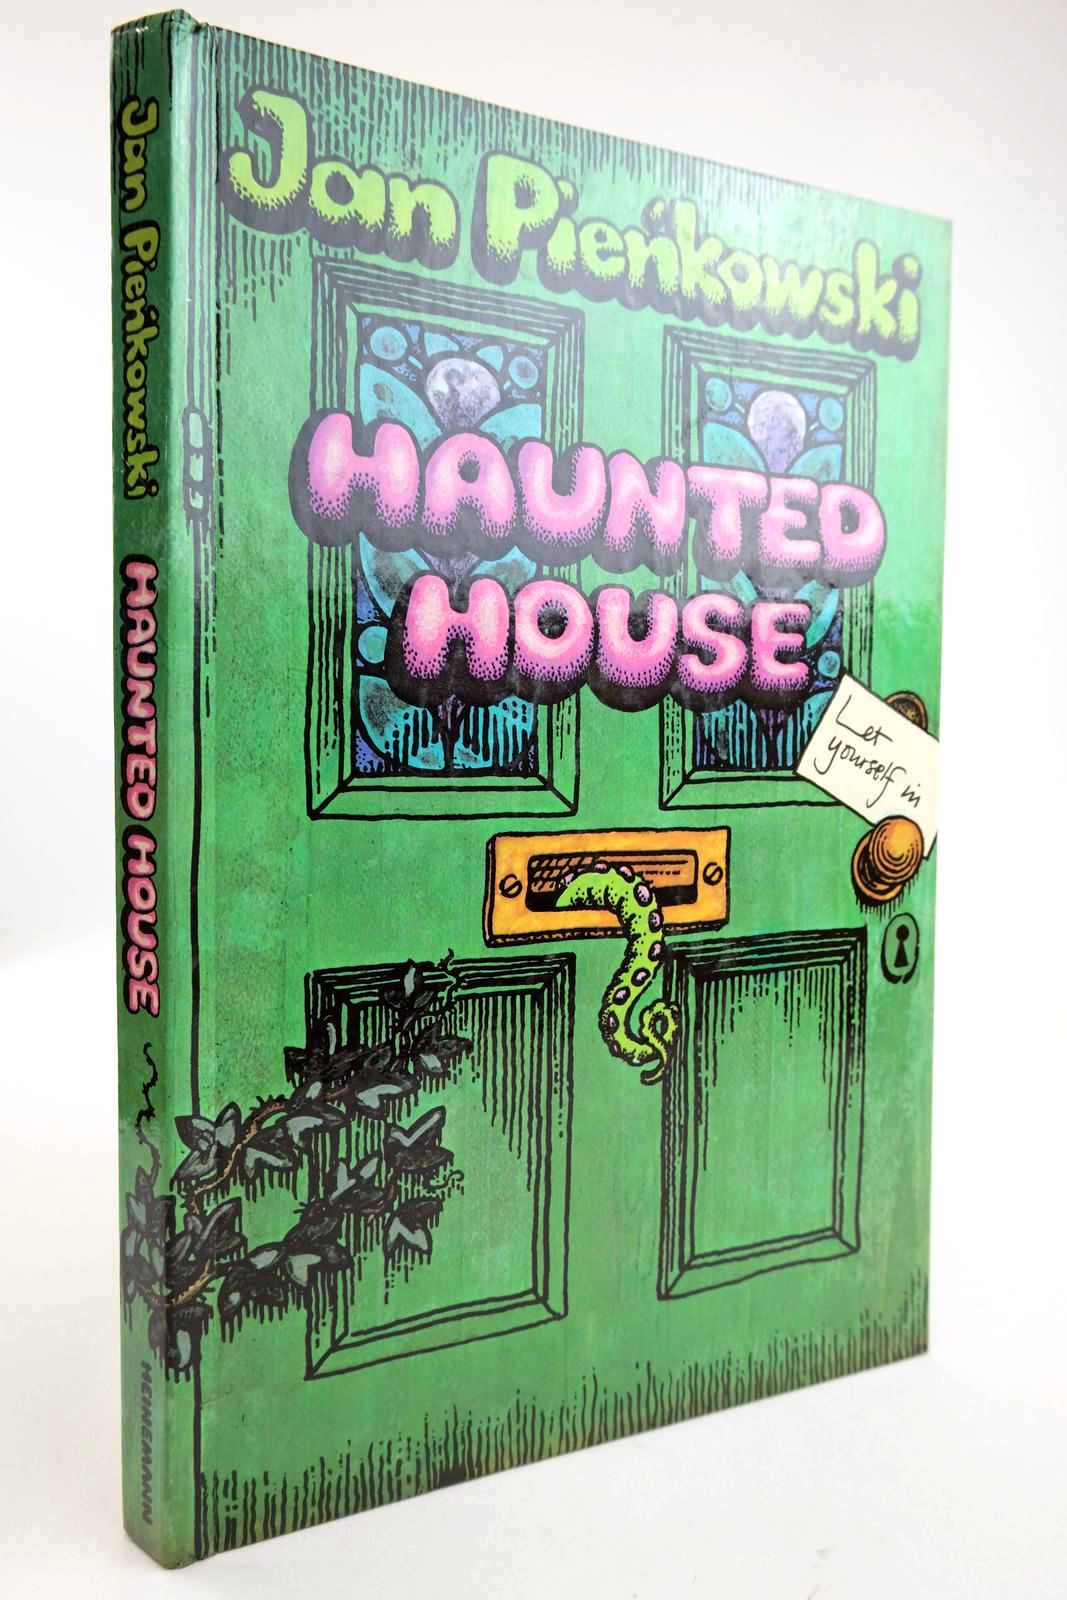 Photo of HAUNTED HOUSE written by Pienkowski, Jan illustrated by Pienkowski, Jan Walmsley, Jane published by William Heinemann Ltd. (STOCK CODE: 2132951)  for sale by Stella & Rose's Books